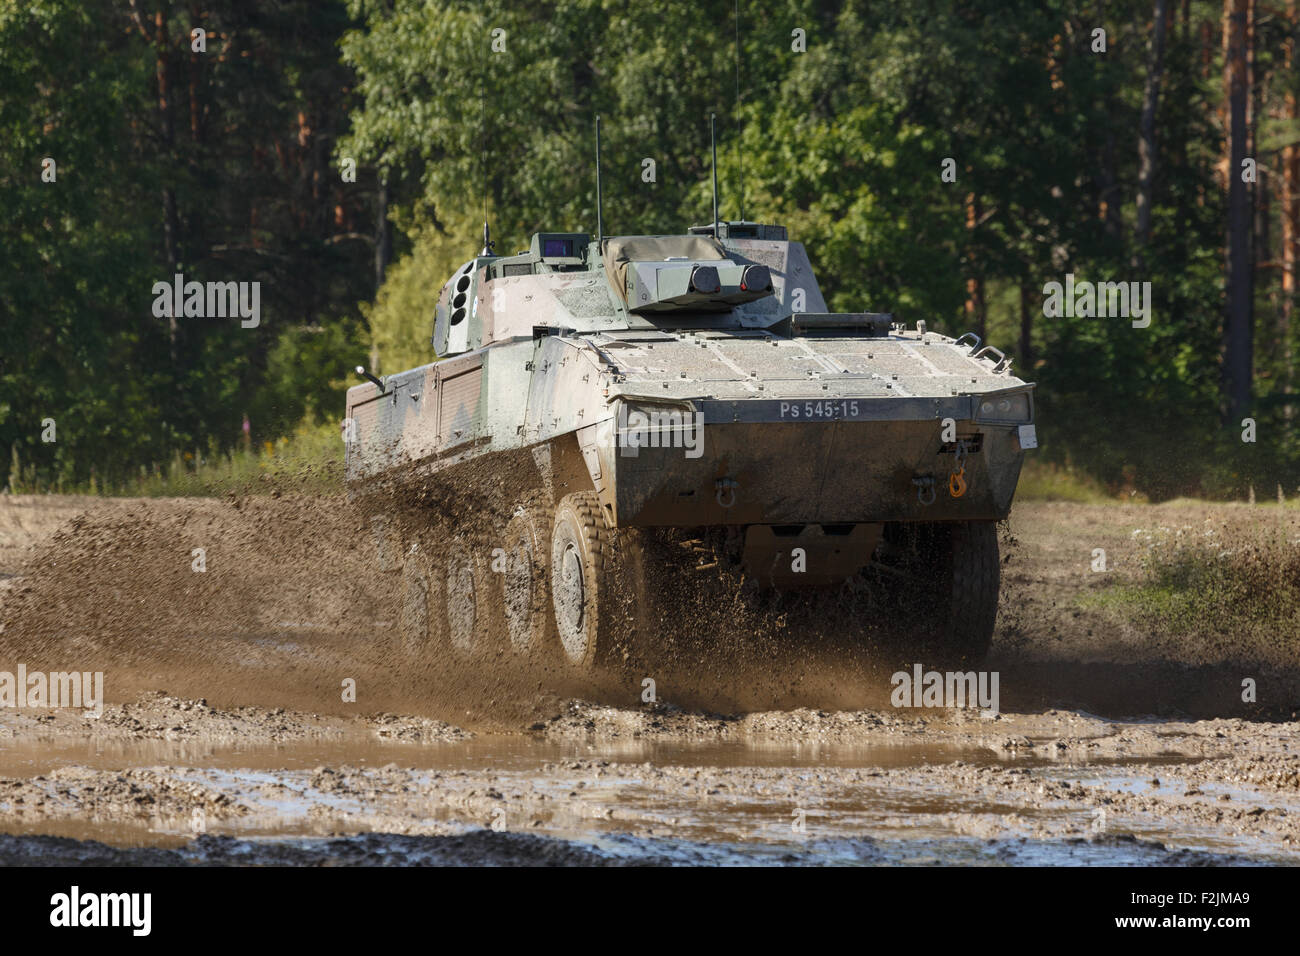 Patria XA-361 AMOS is an innovative fighting vehicle for infantry fire support with a twin 120 mm mortar capable - Stock Image